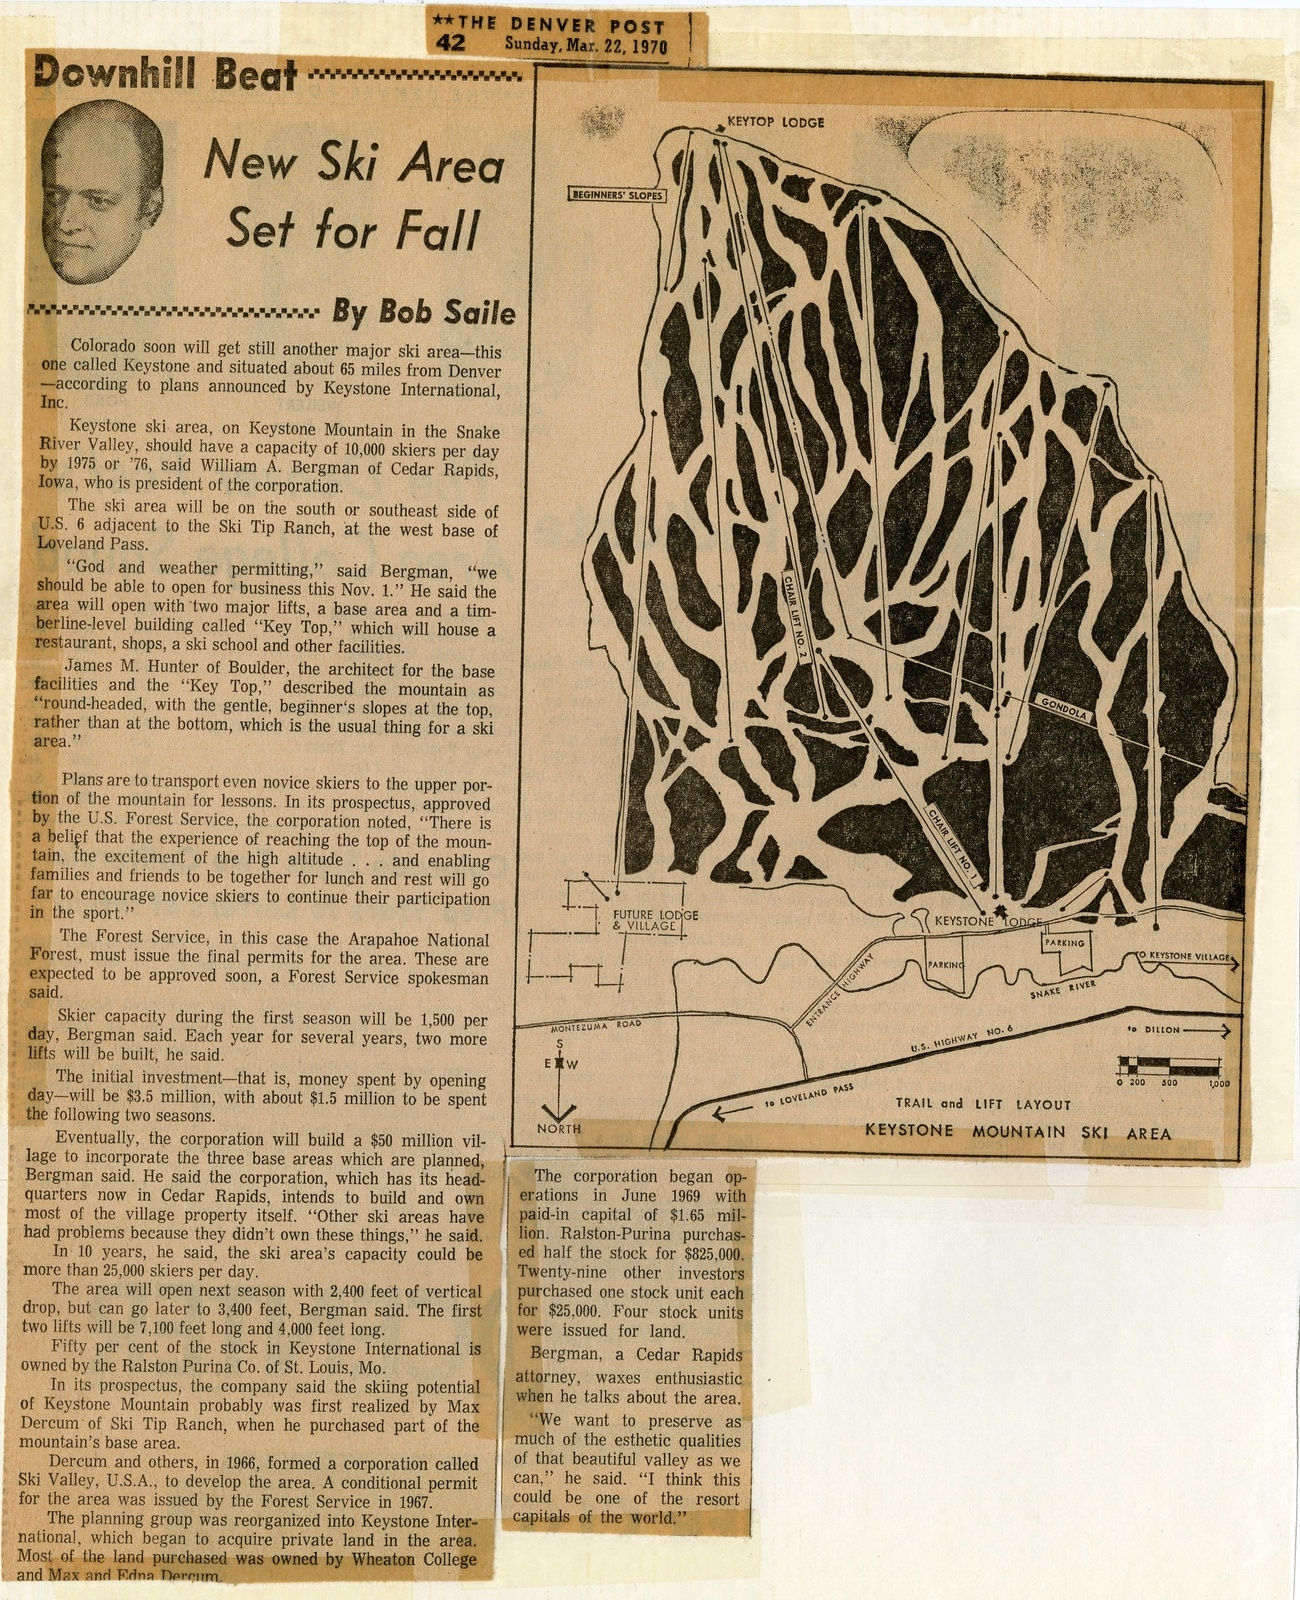 An article in The Denver Post shows a trail map for the new Keystone Mountain Ski Area set to open on Nov. 21, 1970 | Photo from the Bergman family